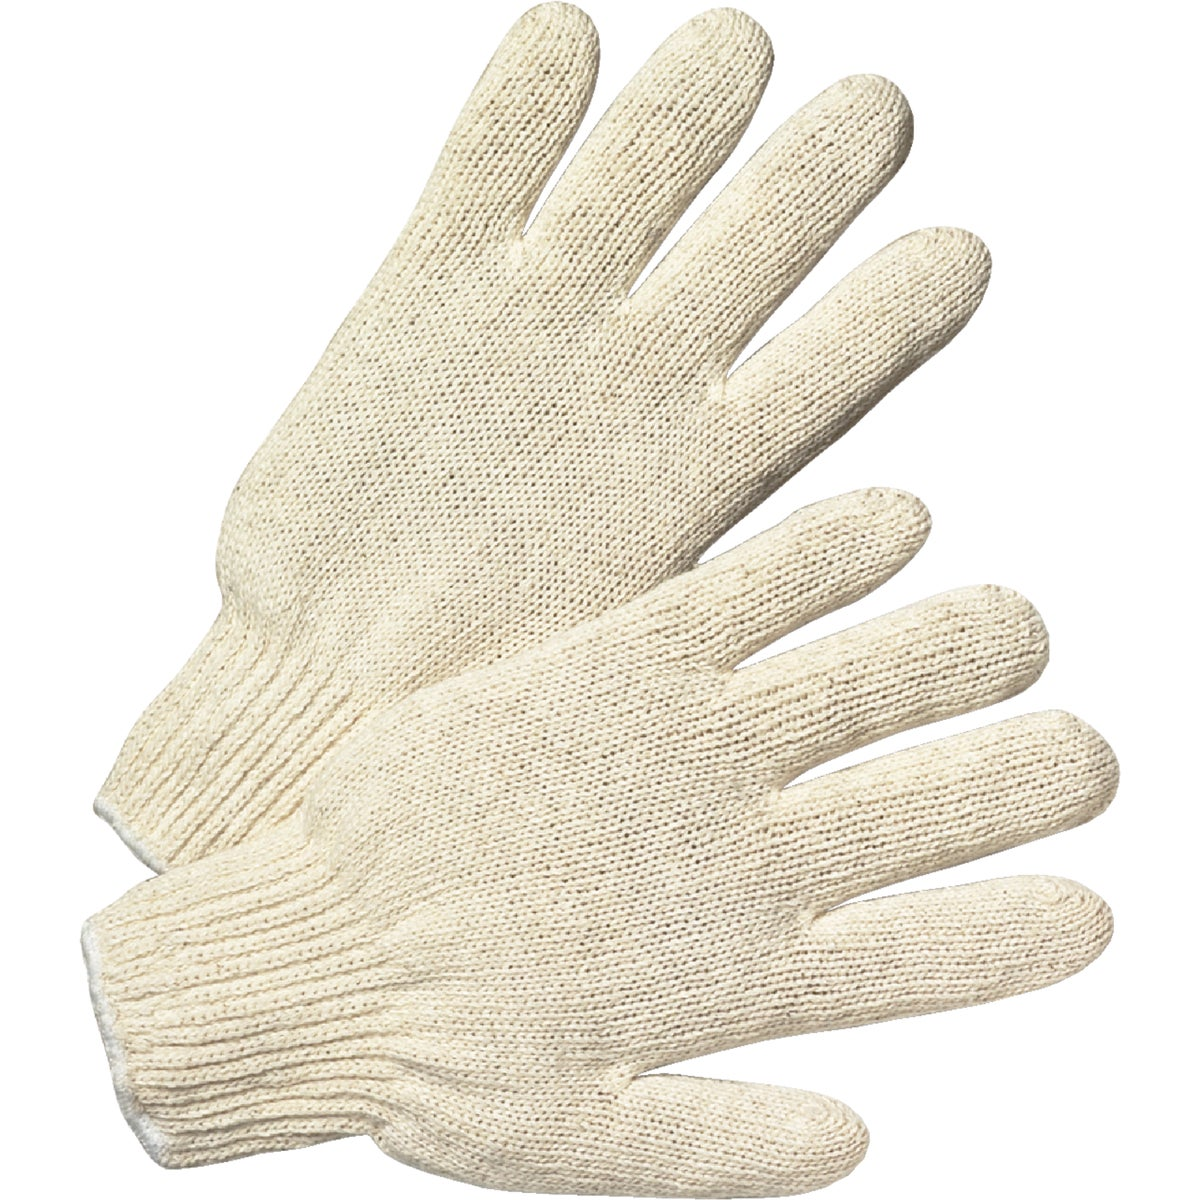 NAT STRING KNIT GLOVES - 710S by West Chester Incom